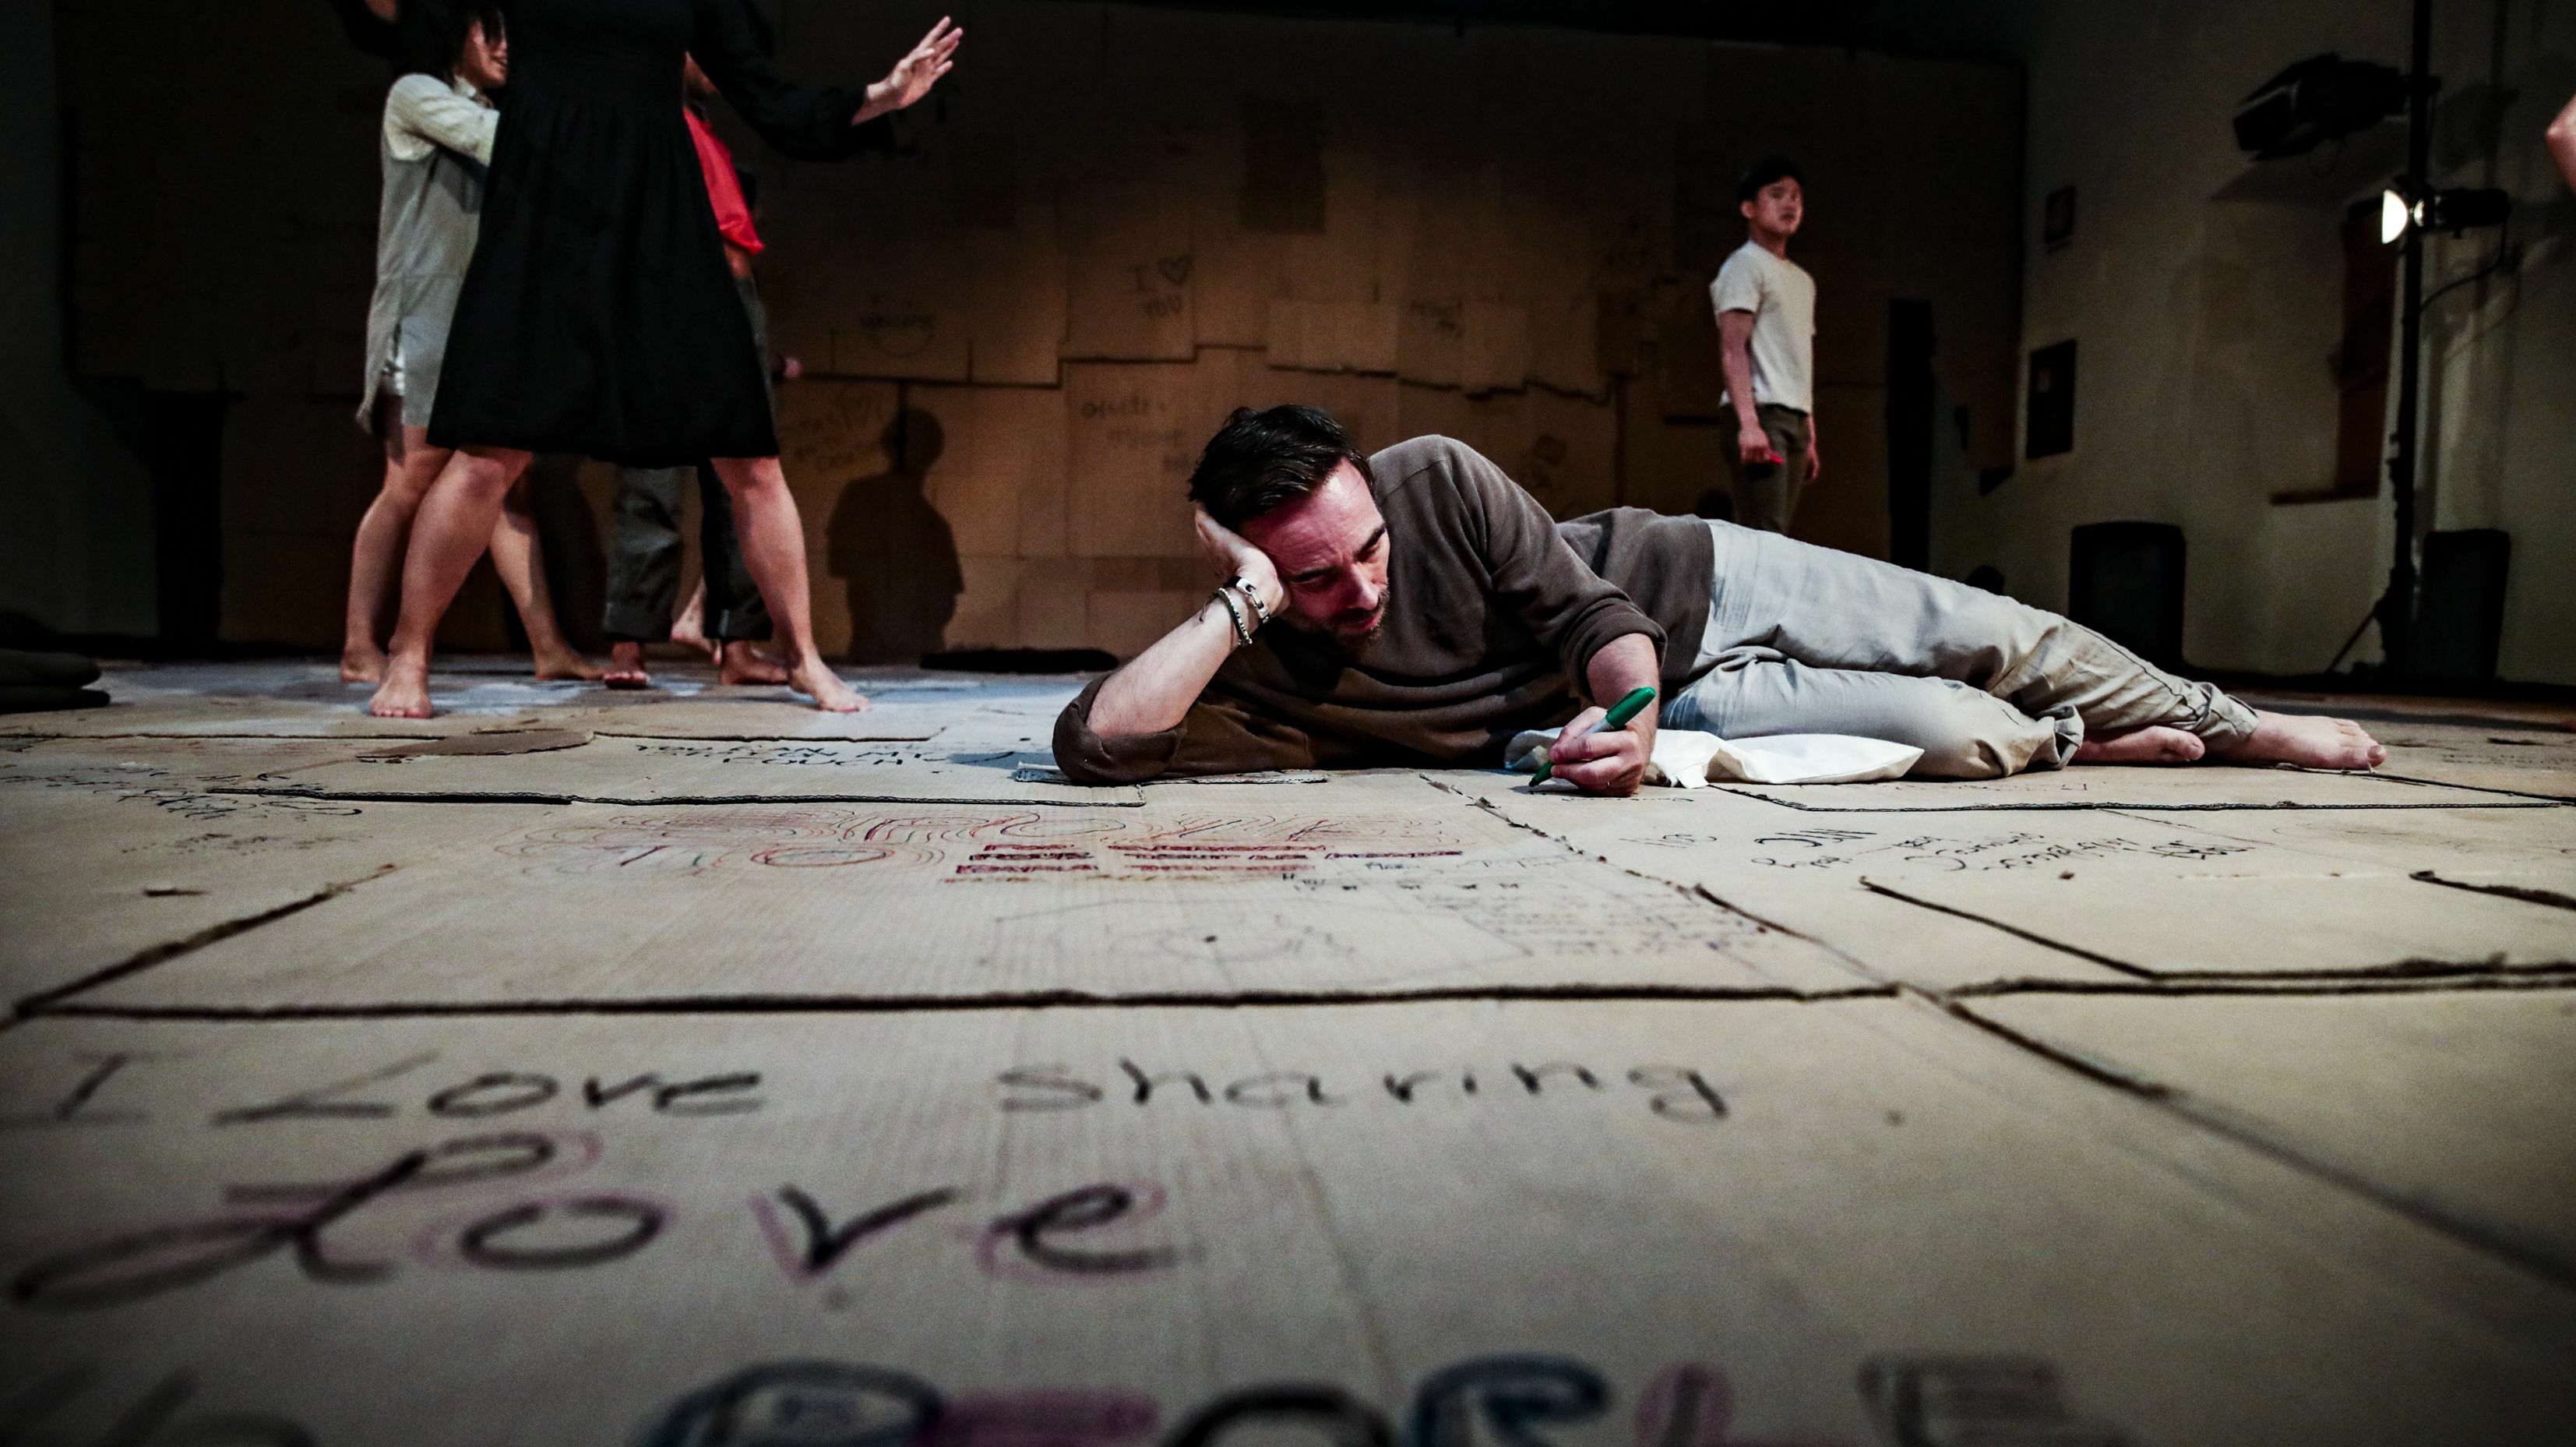 Dance-Theater Piece Explores the Walls That Divide